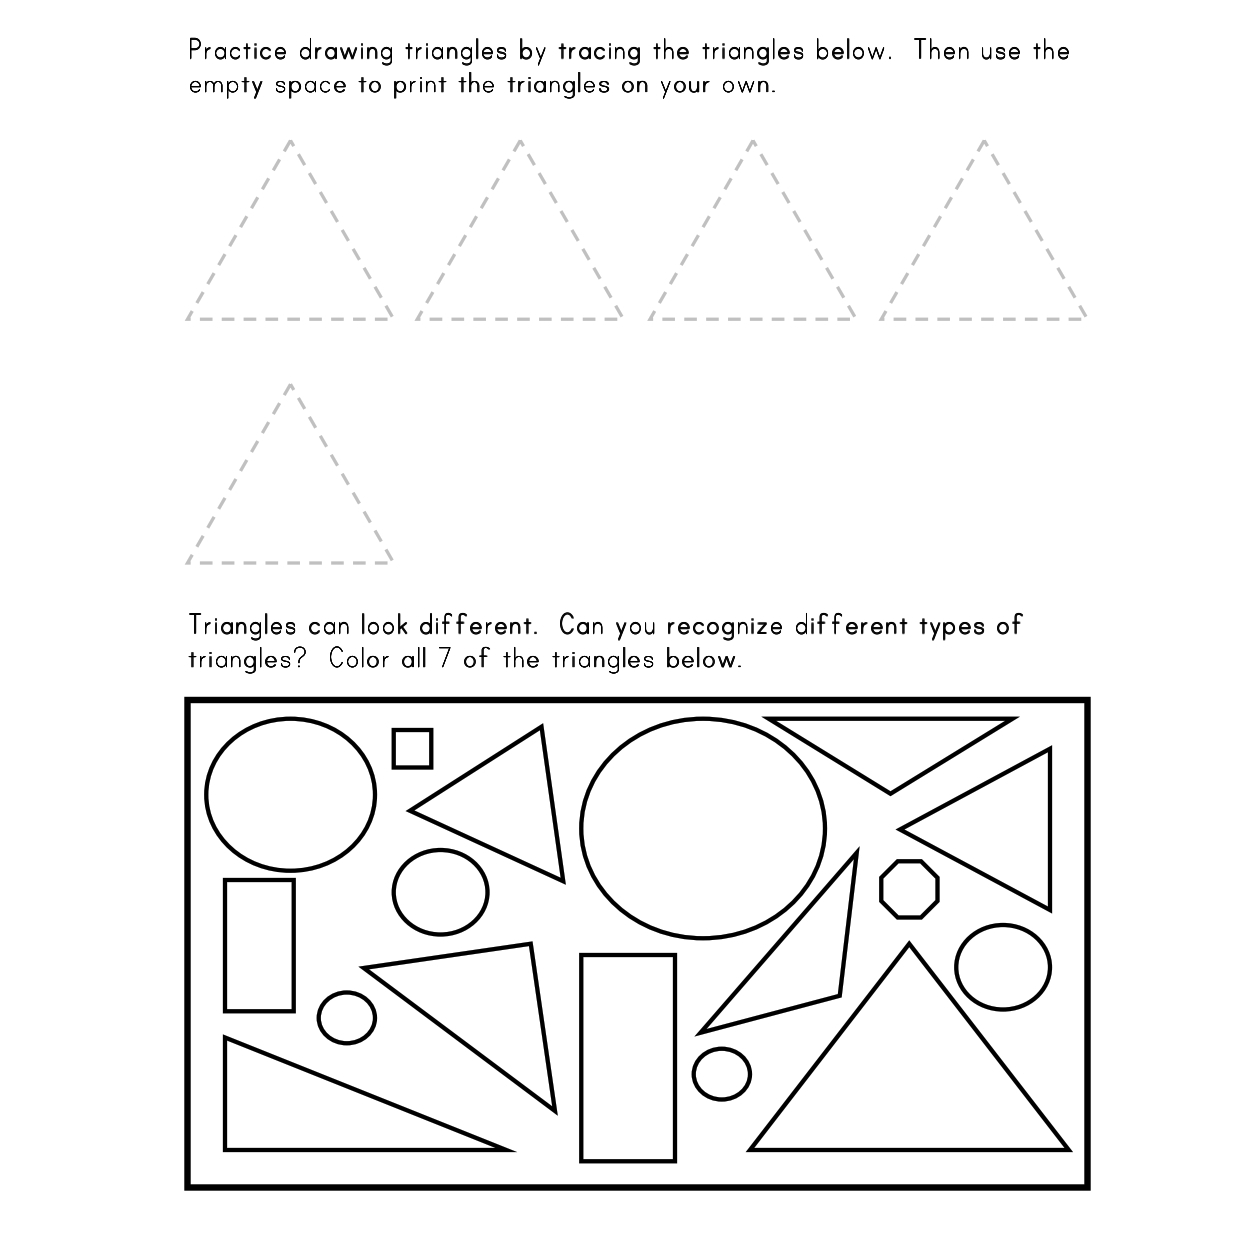 Worksheet Soil Texture Triangle Worksheet Grass Fedjp Worksheet Study Site